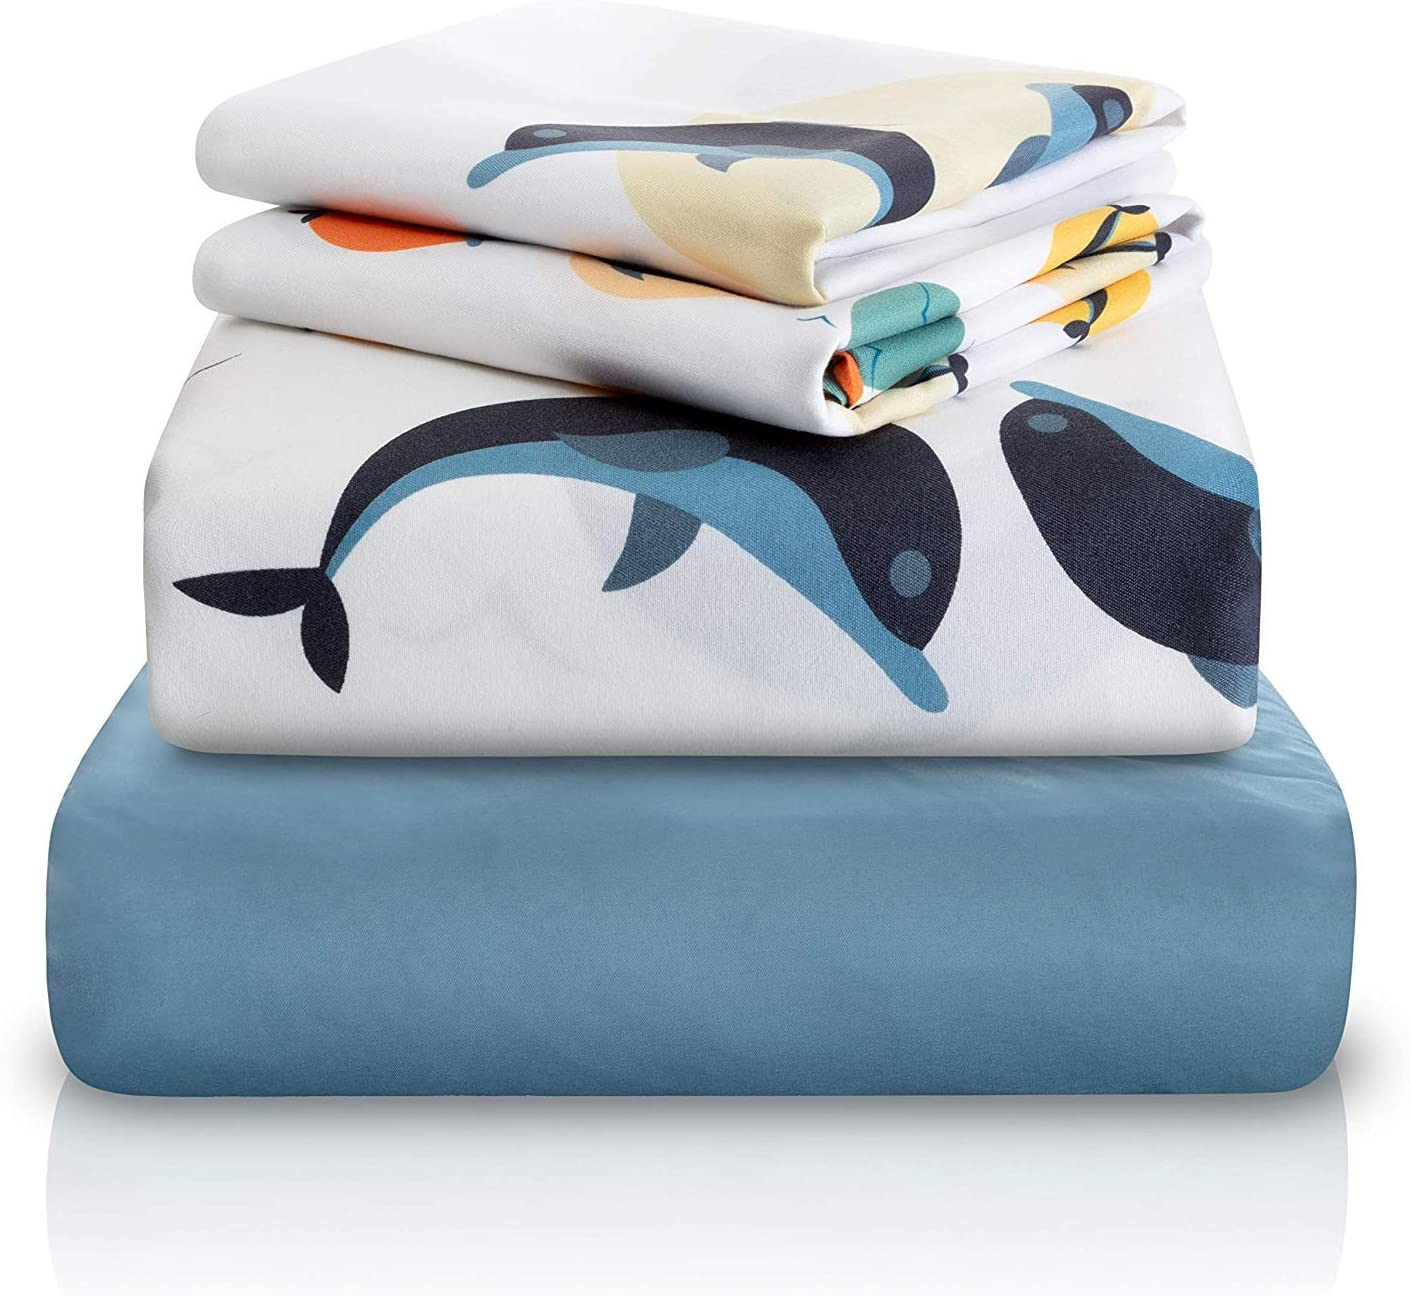 "Chital 4 Pc Full Bed Sheets | Dolphin Themed Kids Bedding Set | Marine Animal Collection | Durable Super-Soft, Double-Brushed Microfiber | 1 Flat & 1 Fitted Sheet, 2 Pillow Cases | 15"" Deep"